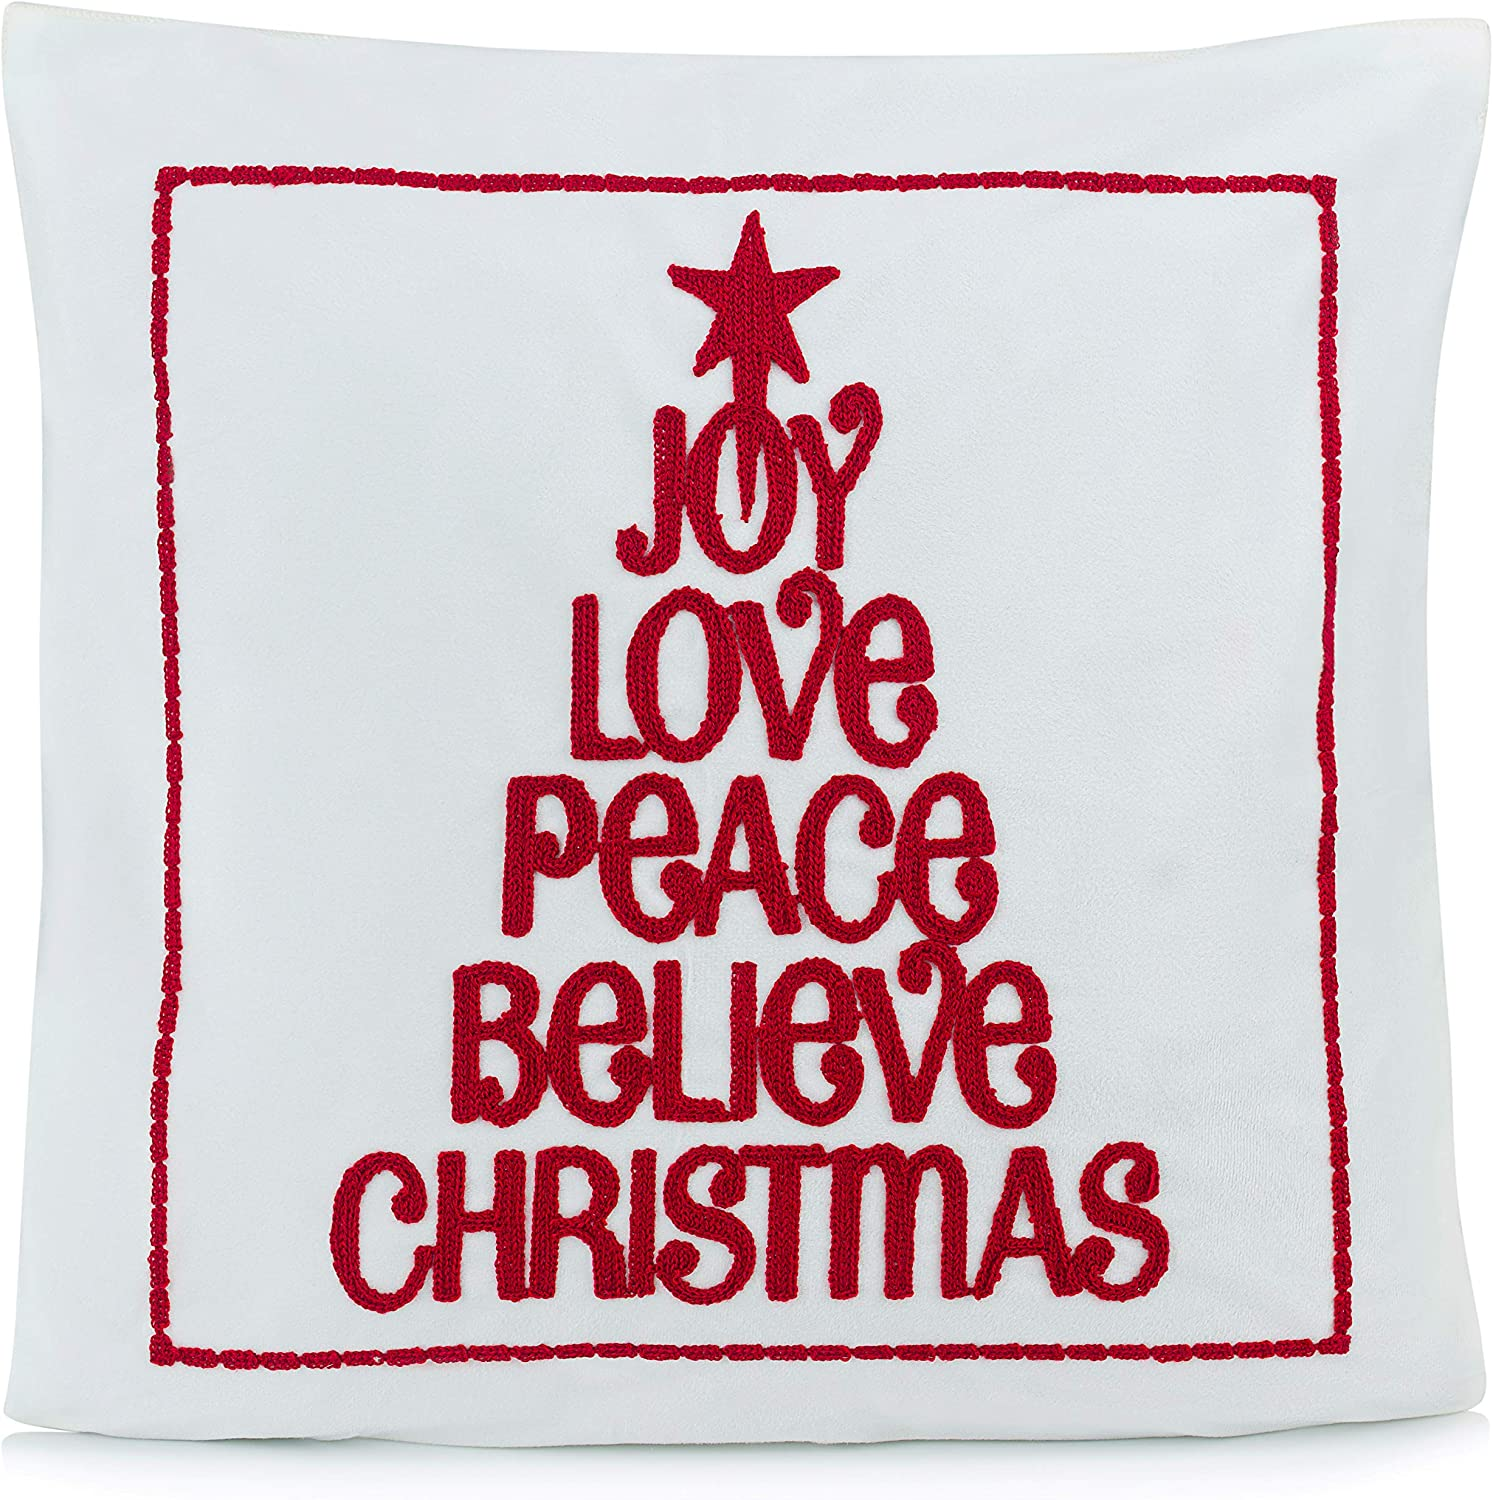 christmas cushion covers One Supplied No Insert Included